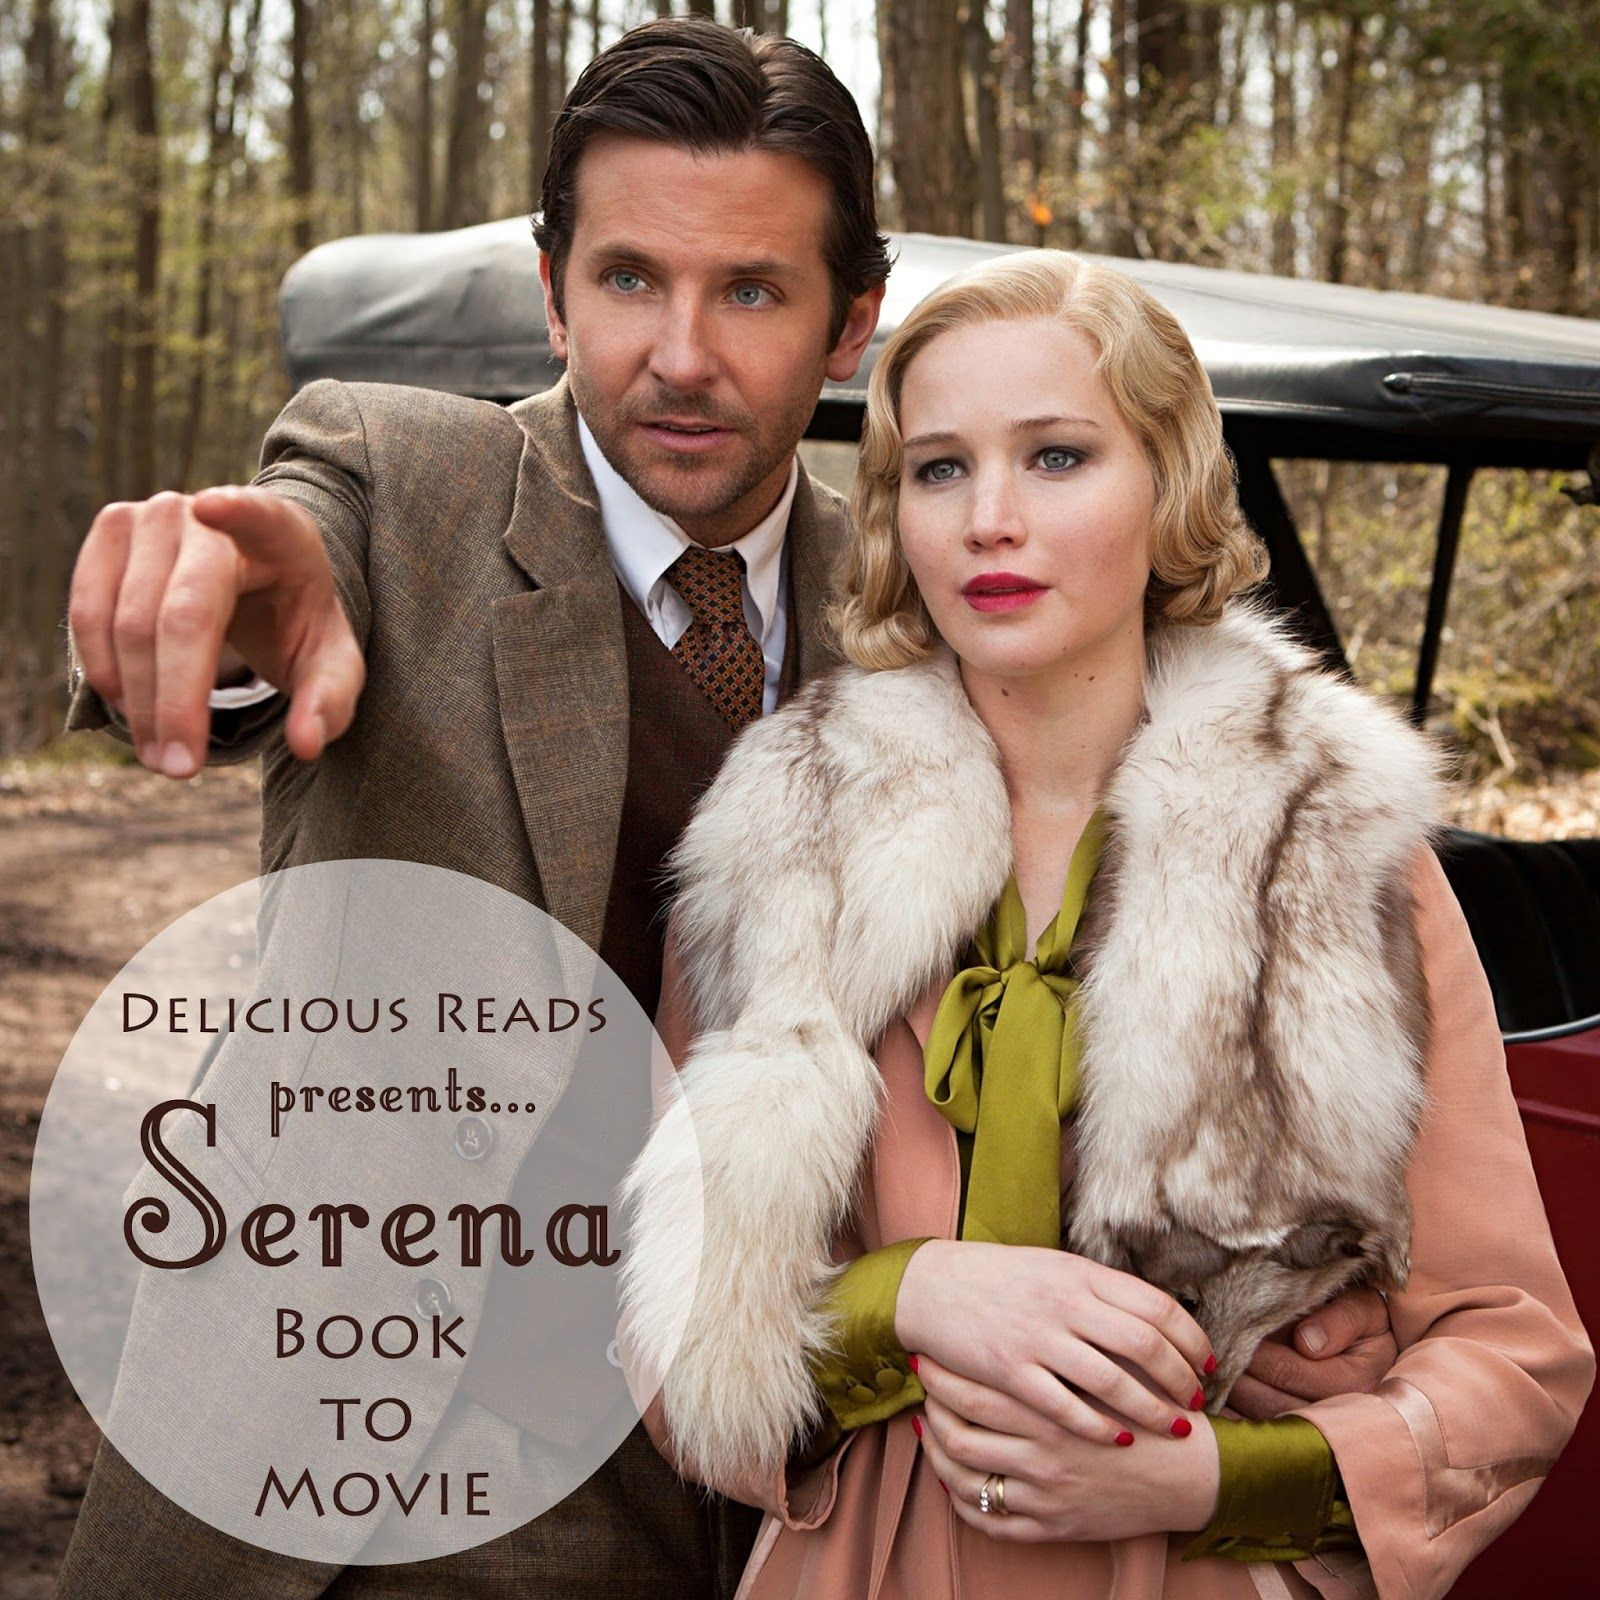 Serena {Book to Movie} with Bradley Cooper and Jennifer